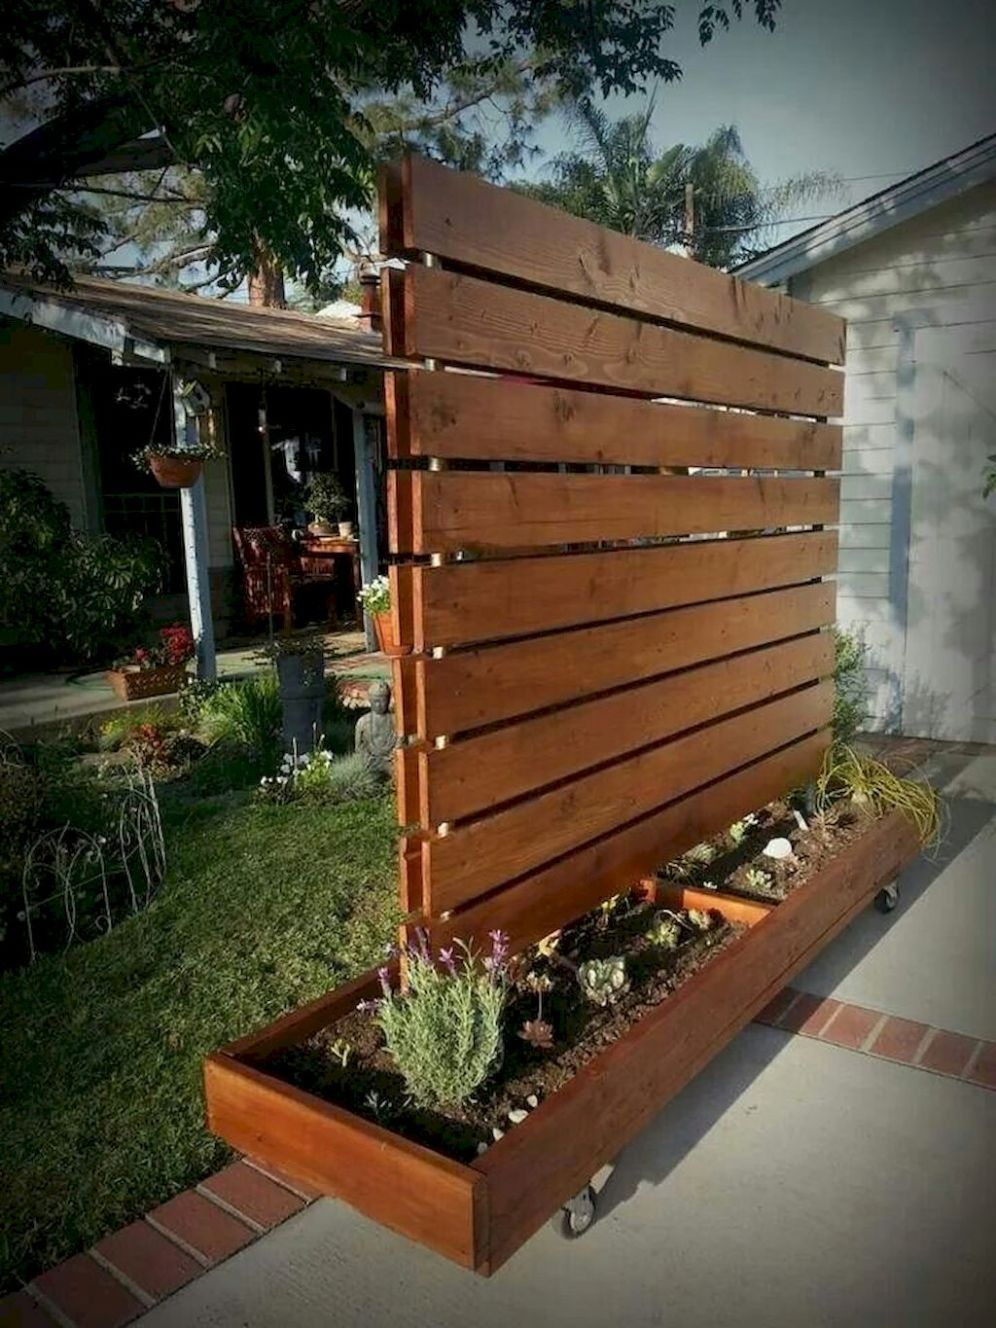 Diy Patio Privacy Screen Ideas: DIY Backyard Privacy Fence Ideas On A Budget (31)